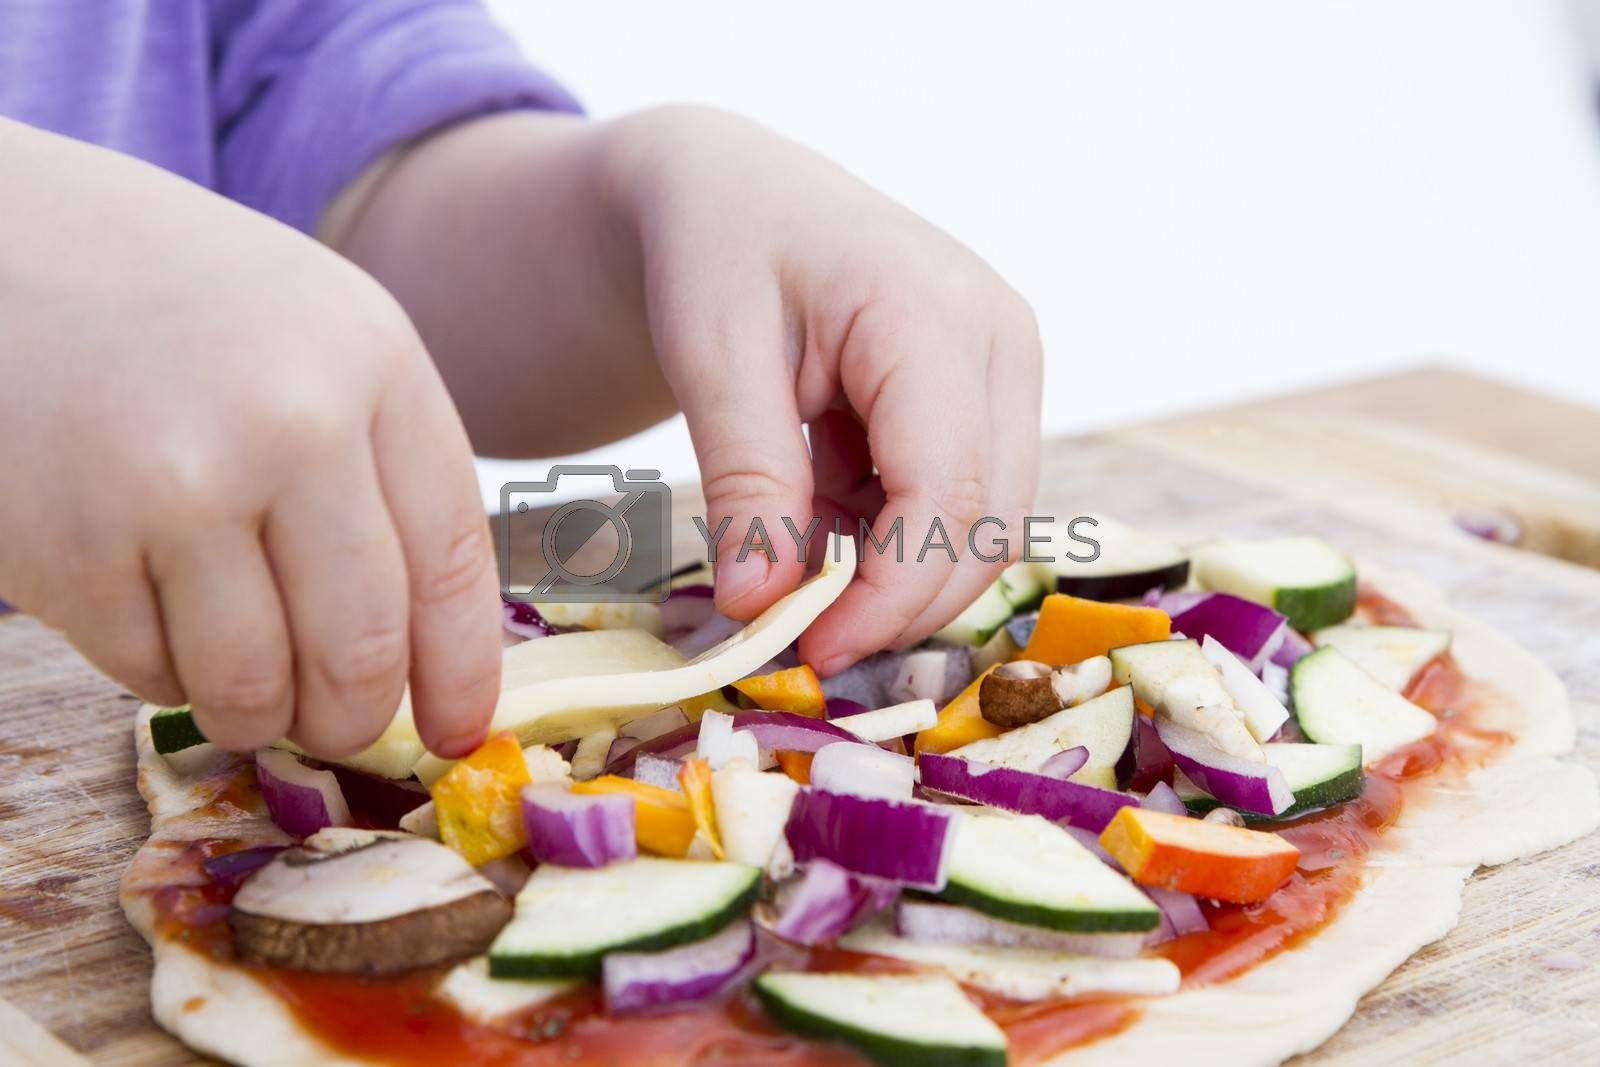 Royalty free image of small hands preparing pizza by gewoldi